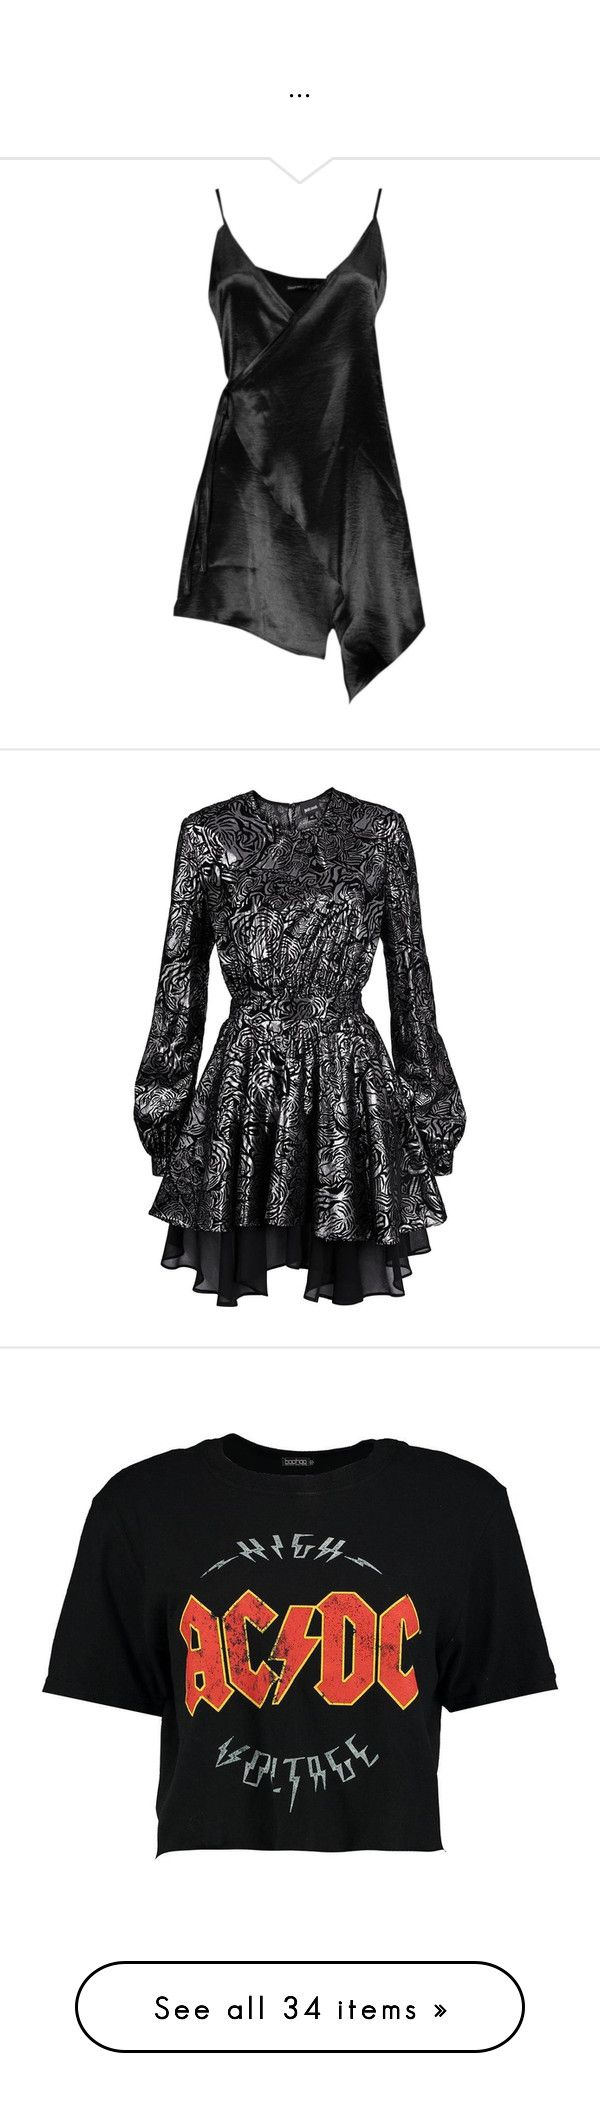 """""""..."""" by luanaloverocks ❤ liked on Polyvore featuring dresses, petite wrap dress, satin cocktail dress, petite cocktail dress, satin wrap dress, asymmetrical dresses, gowns, short dresses, long sleeve lace dress and just cavalli dresses"""